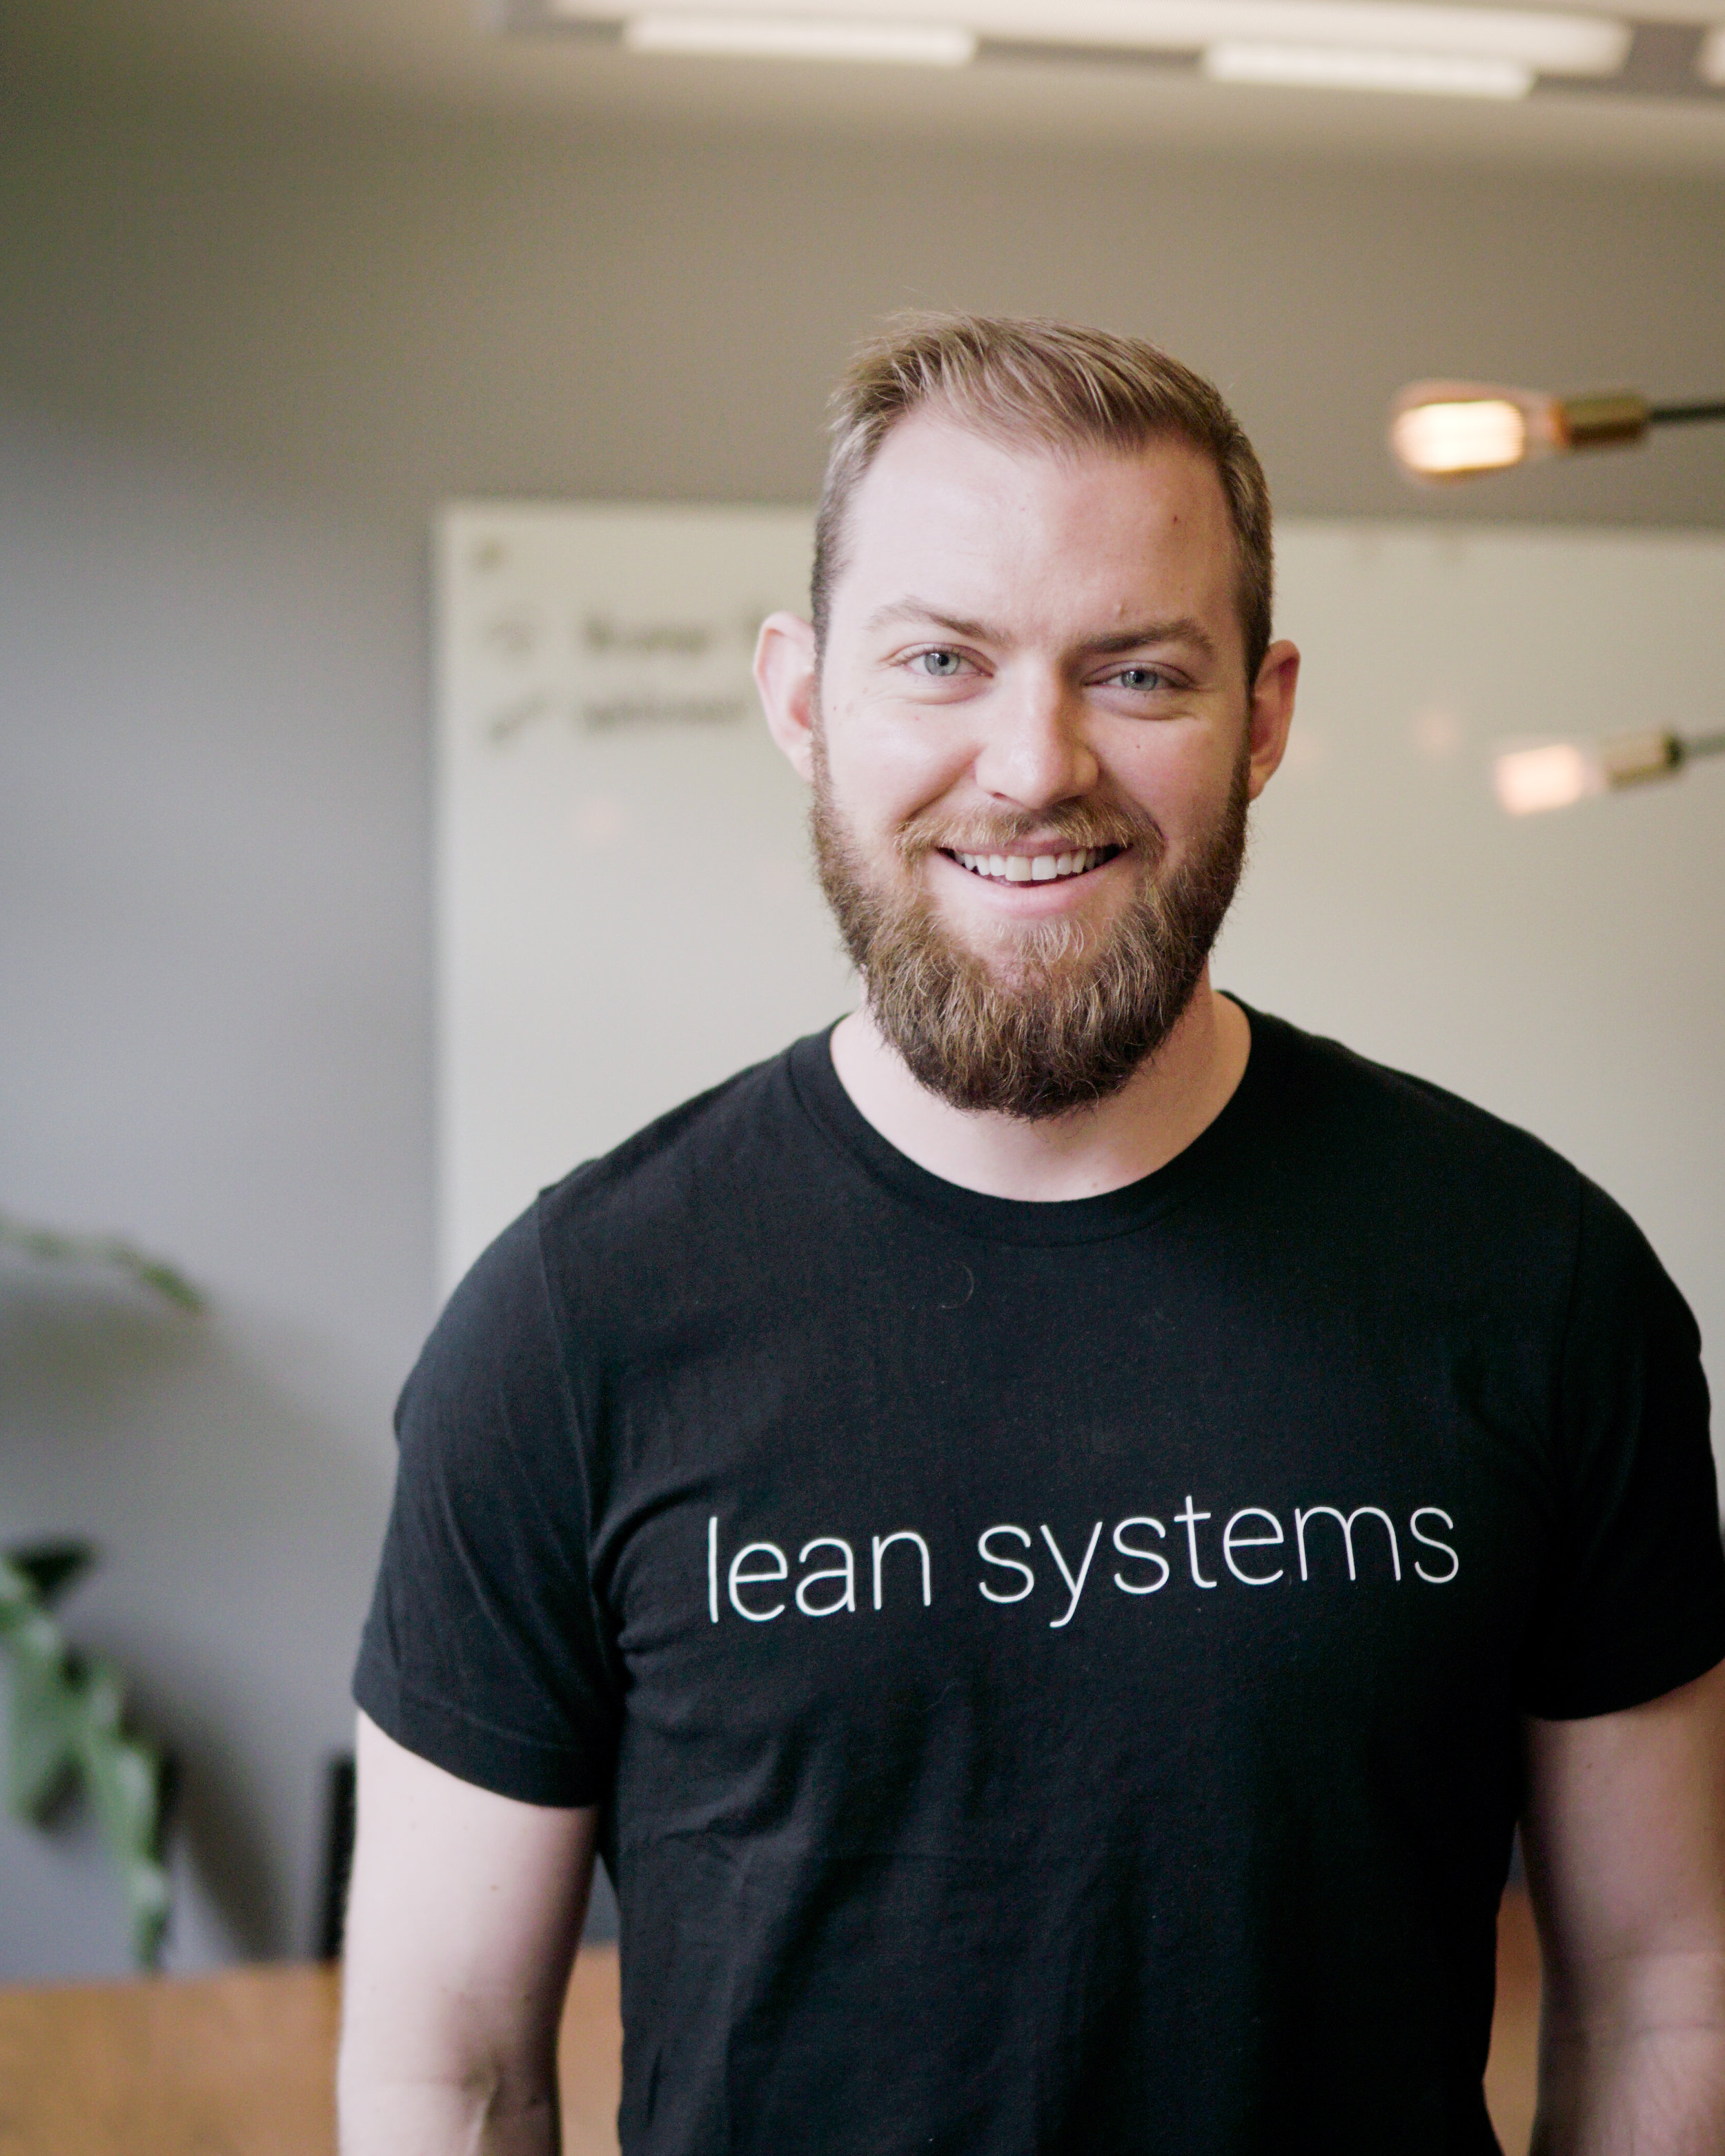 graham-mann-lean-systems